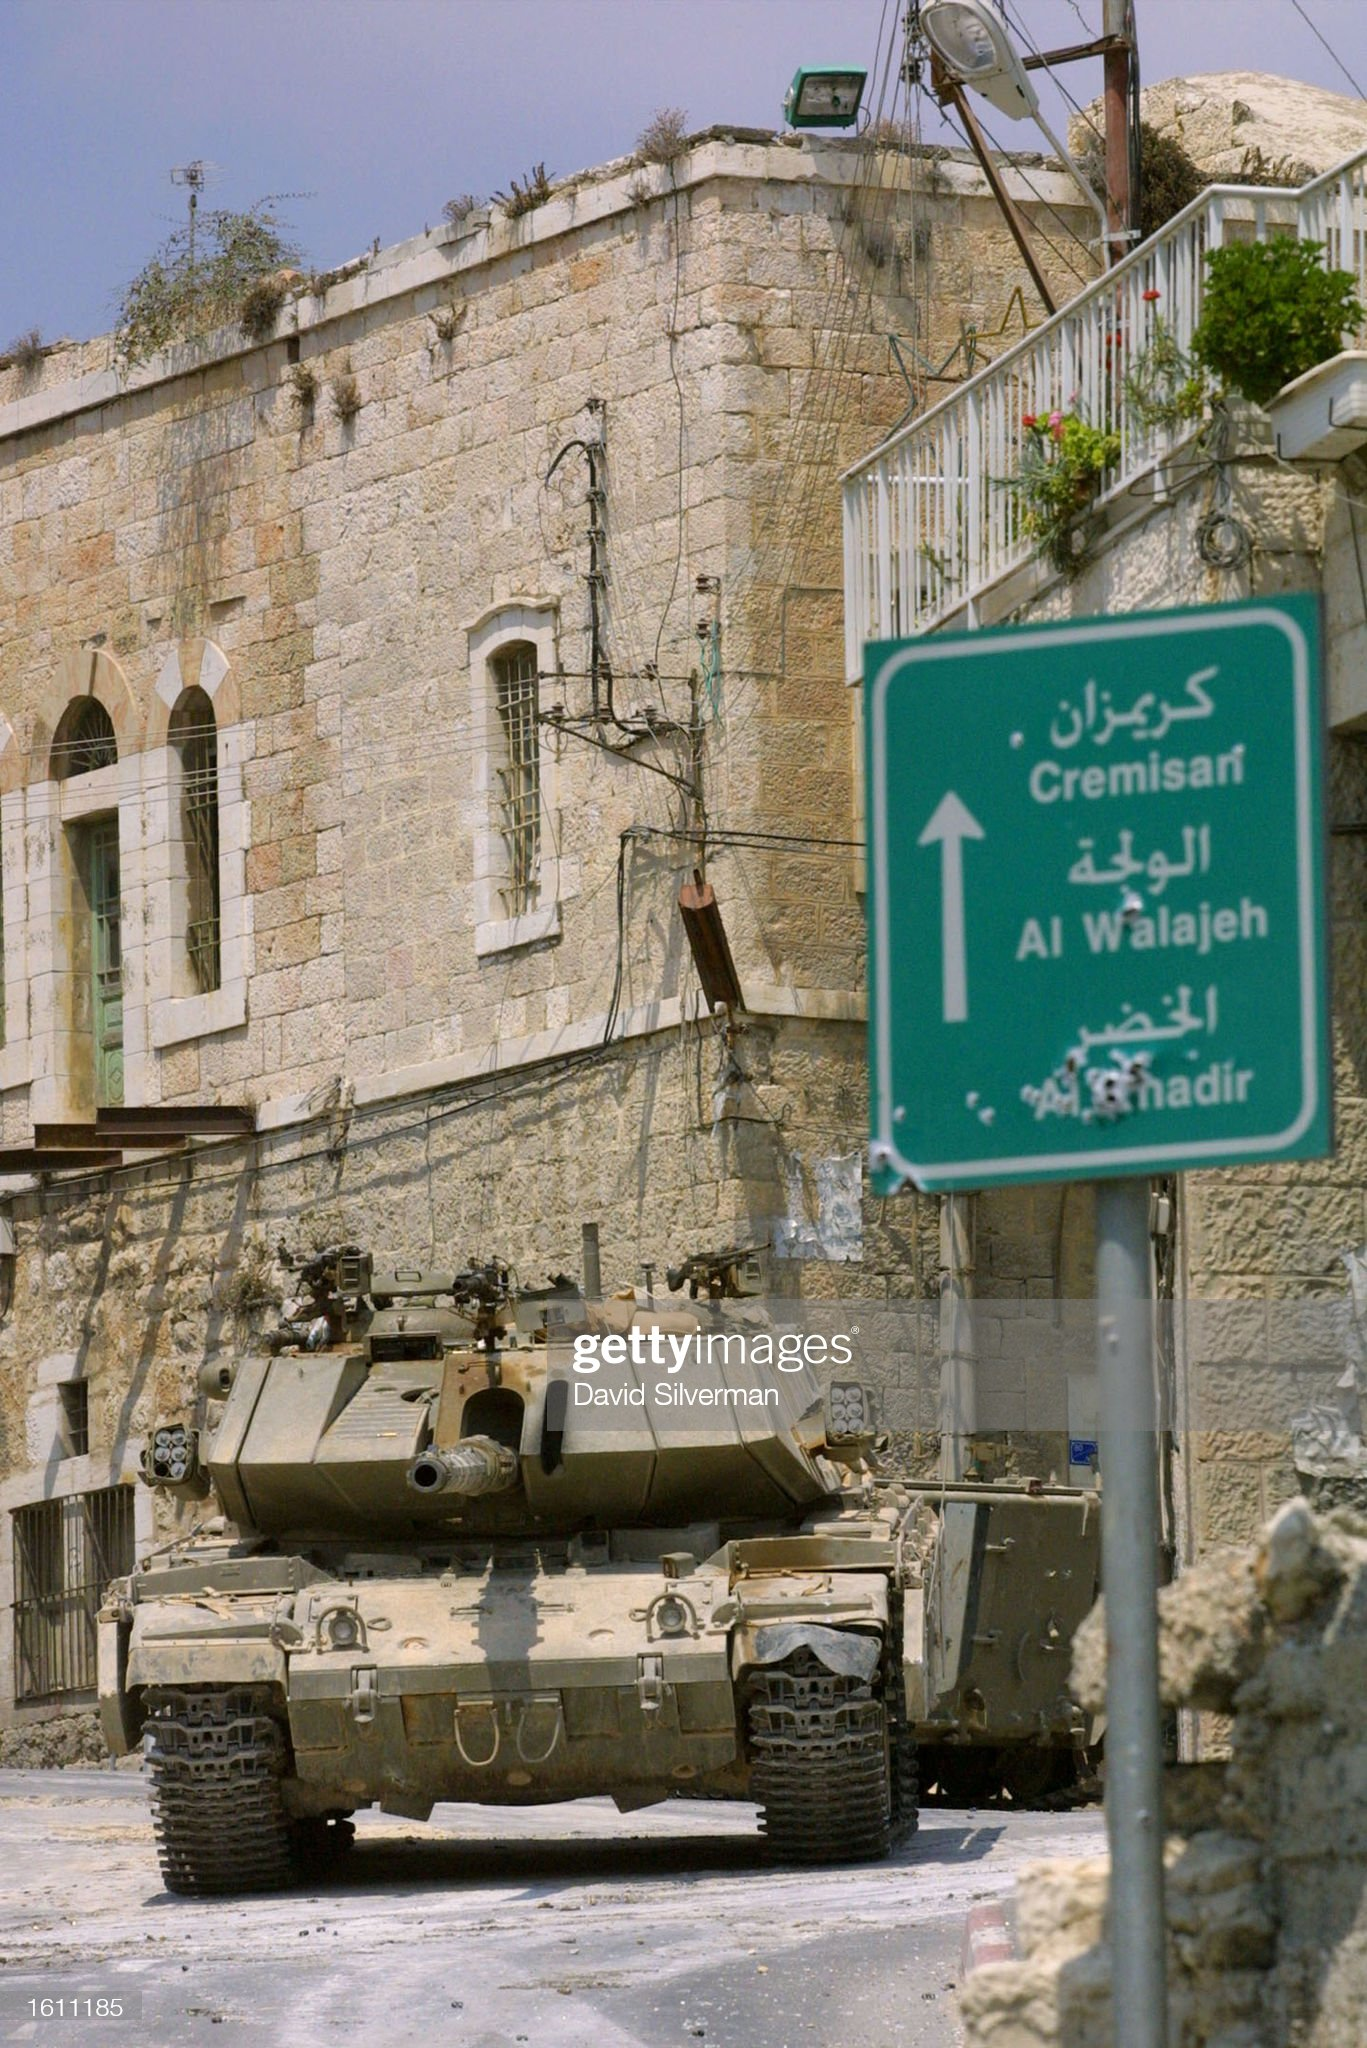 https://media.gettyimages.com/photos/an-israeli-tank-takes-up-position-august-28-2001-in-the-middle-of-the-picture-id1611185?s=2048x2048